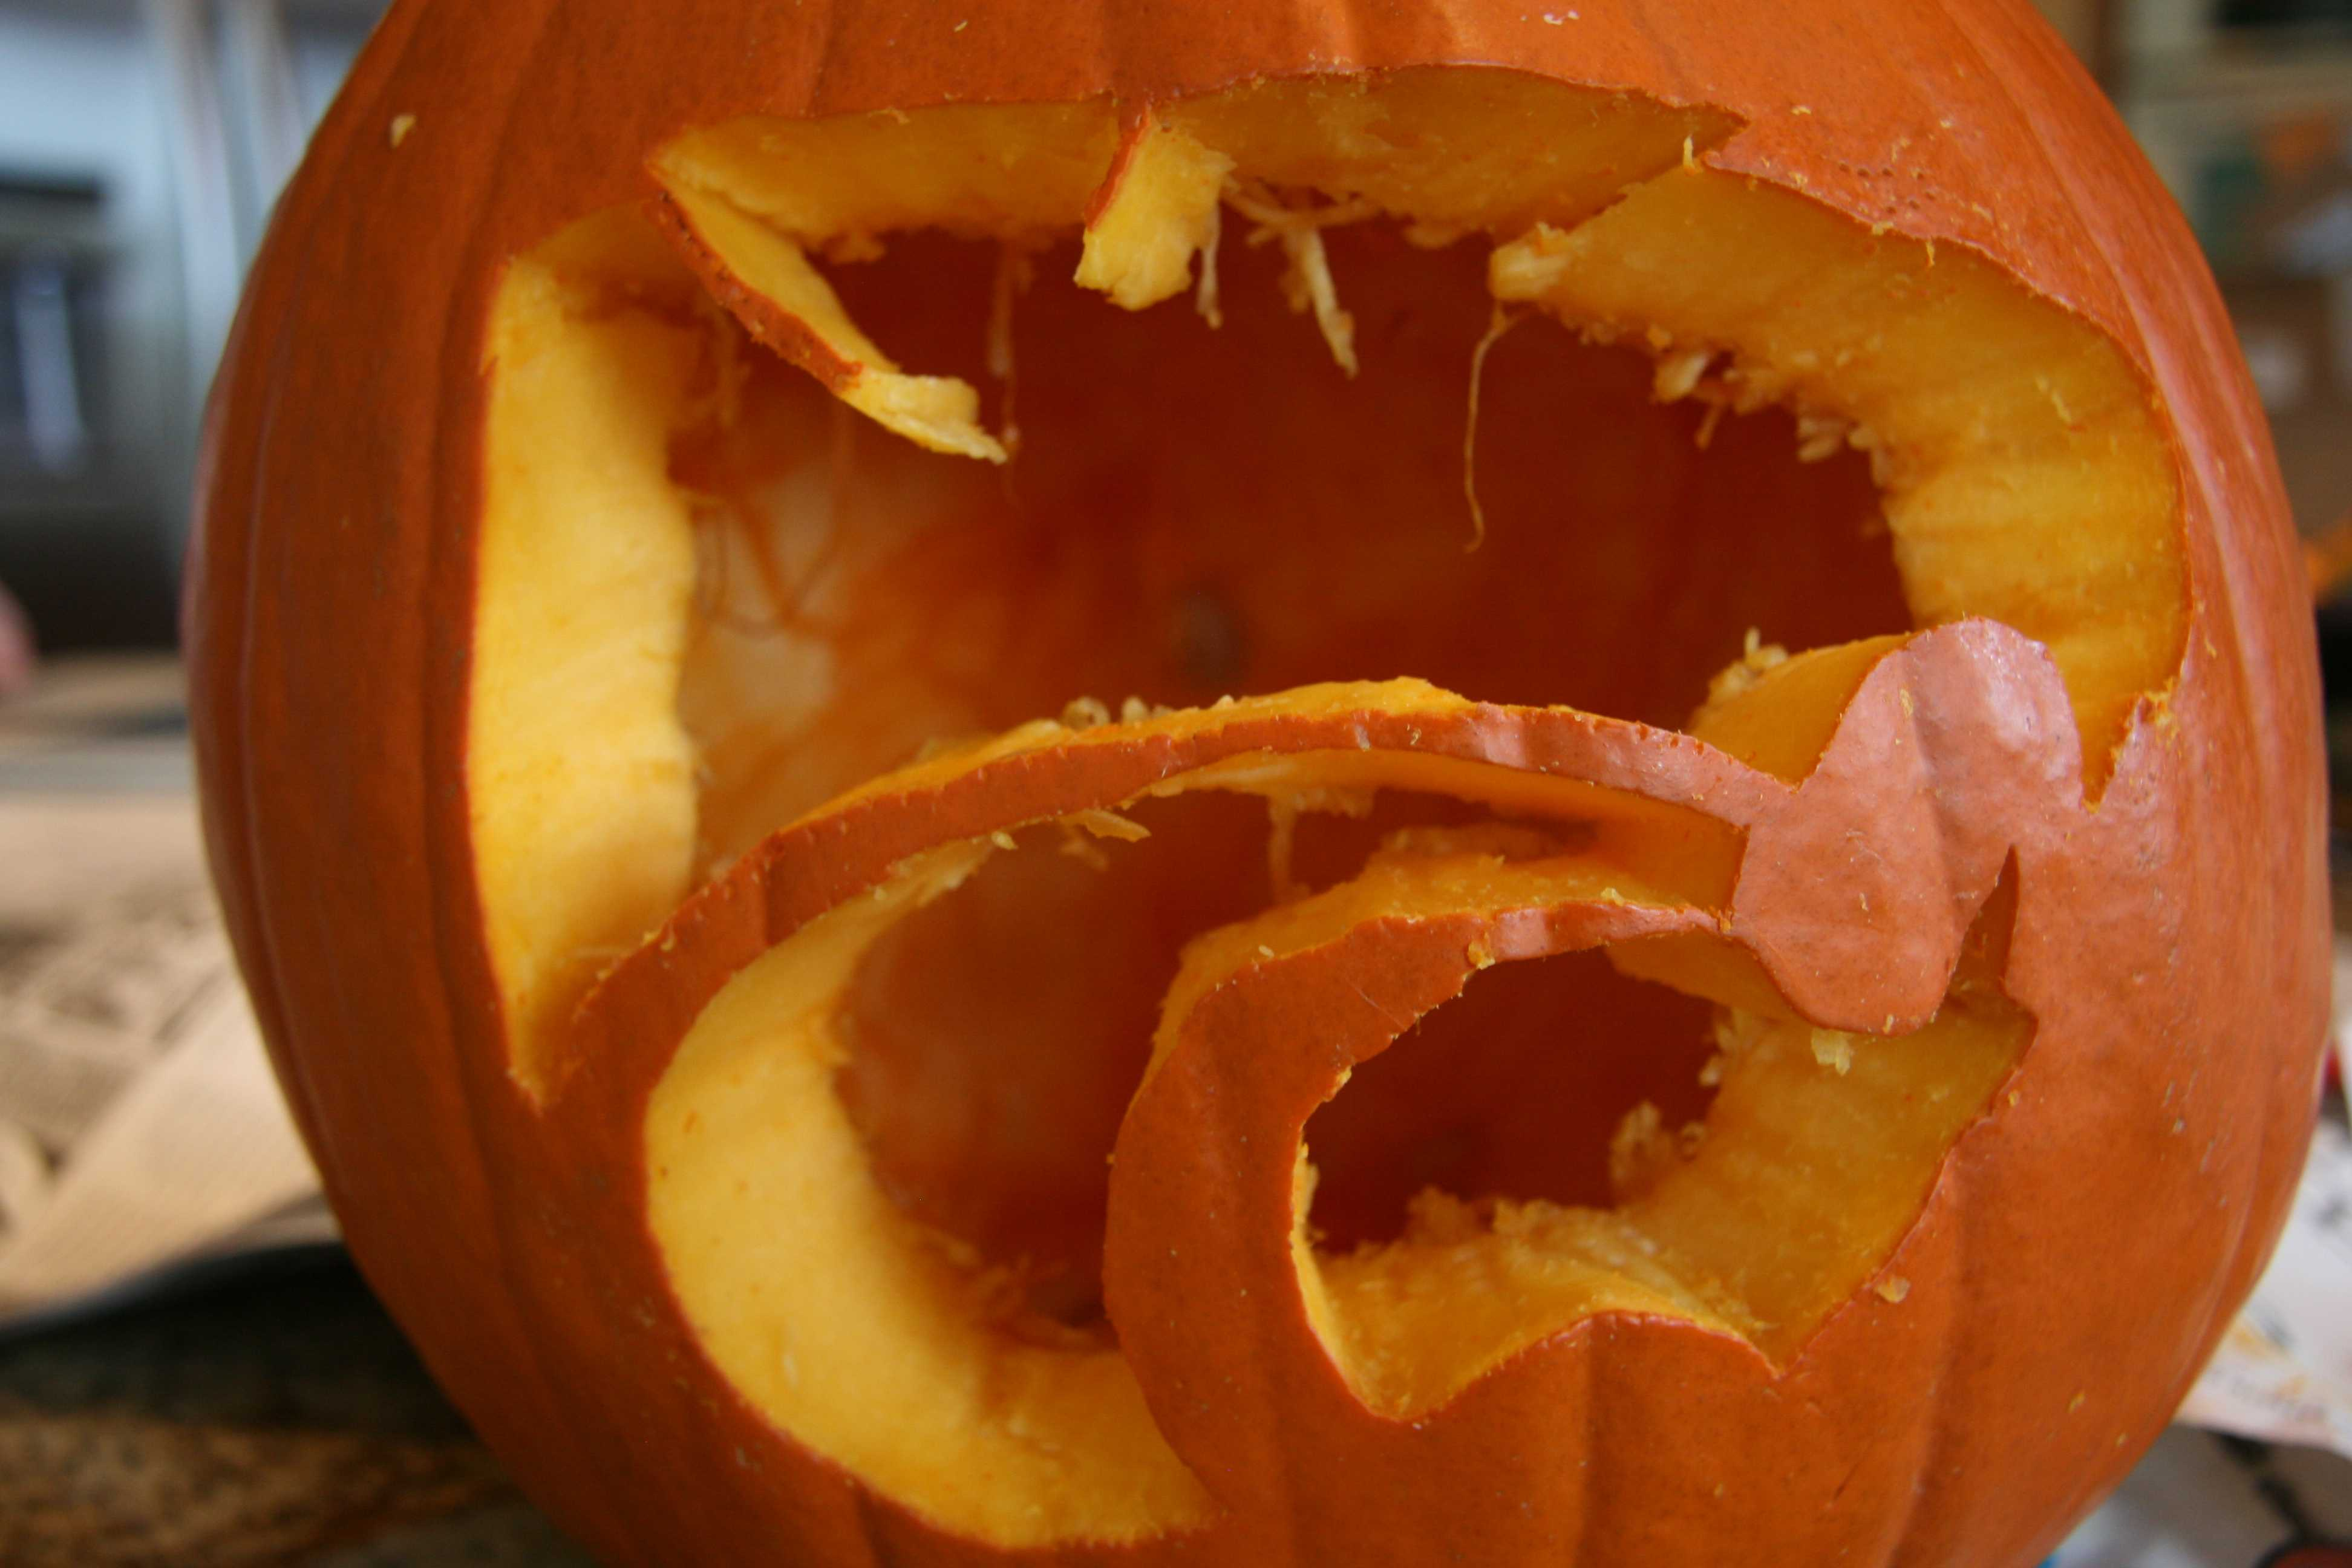 The final design of the pumpkin after the carving process is complete.